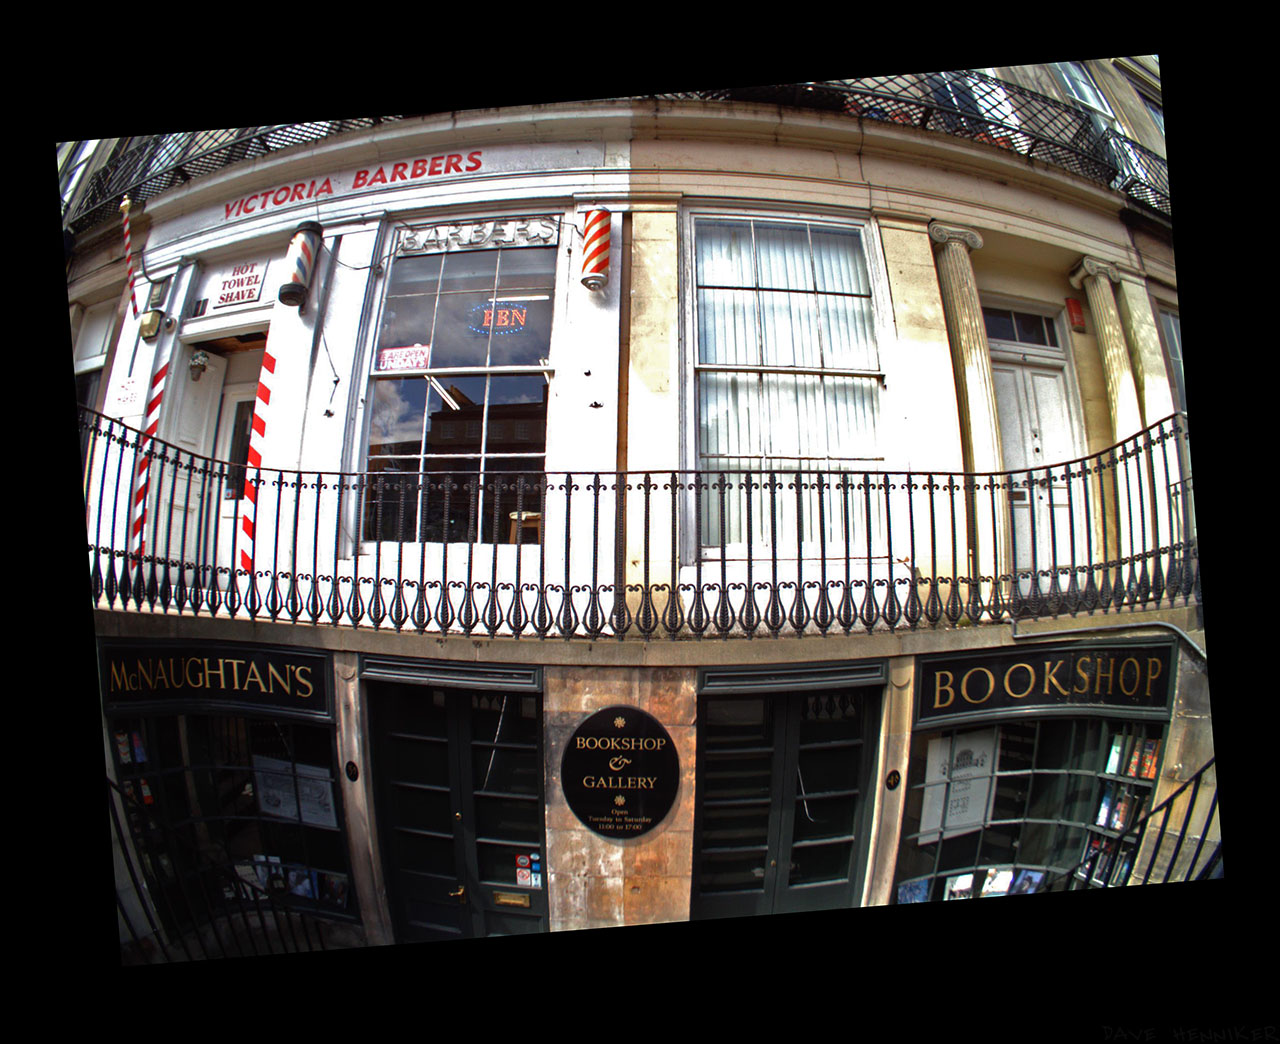 I particularly like these shopfronts in Haddington Place. Another Autographer picture. Unless using a smartphone or tablet to find out what pictures it's taking, you just have to wait until getting back home to your computer.